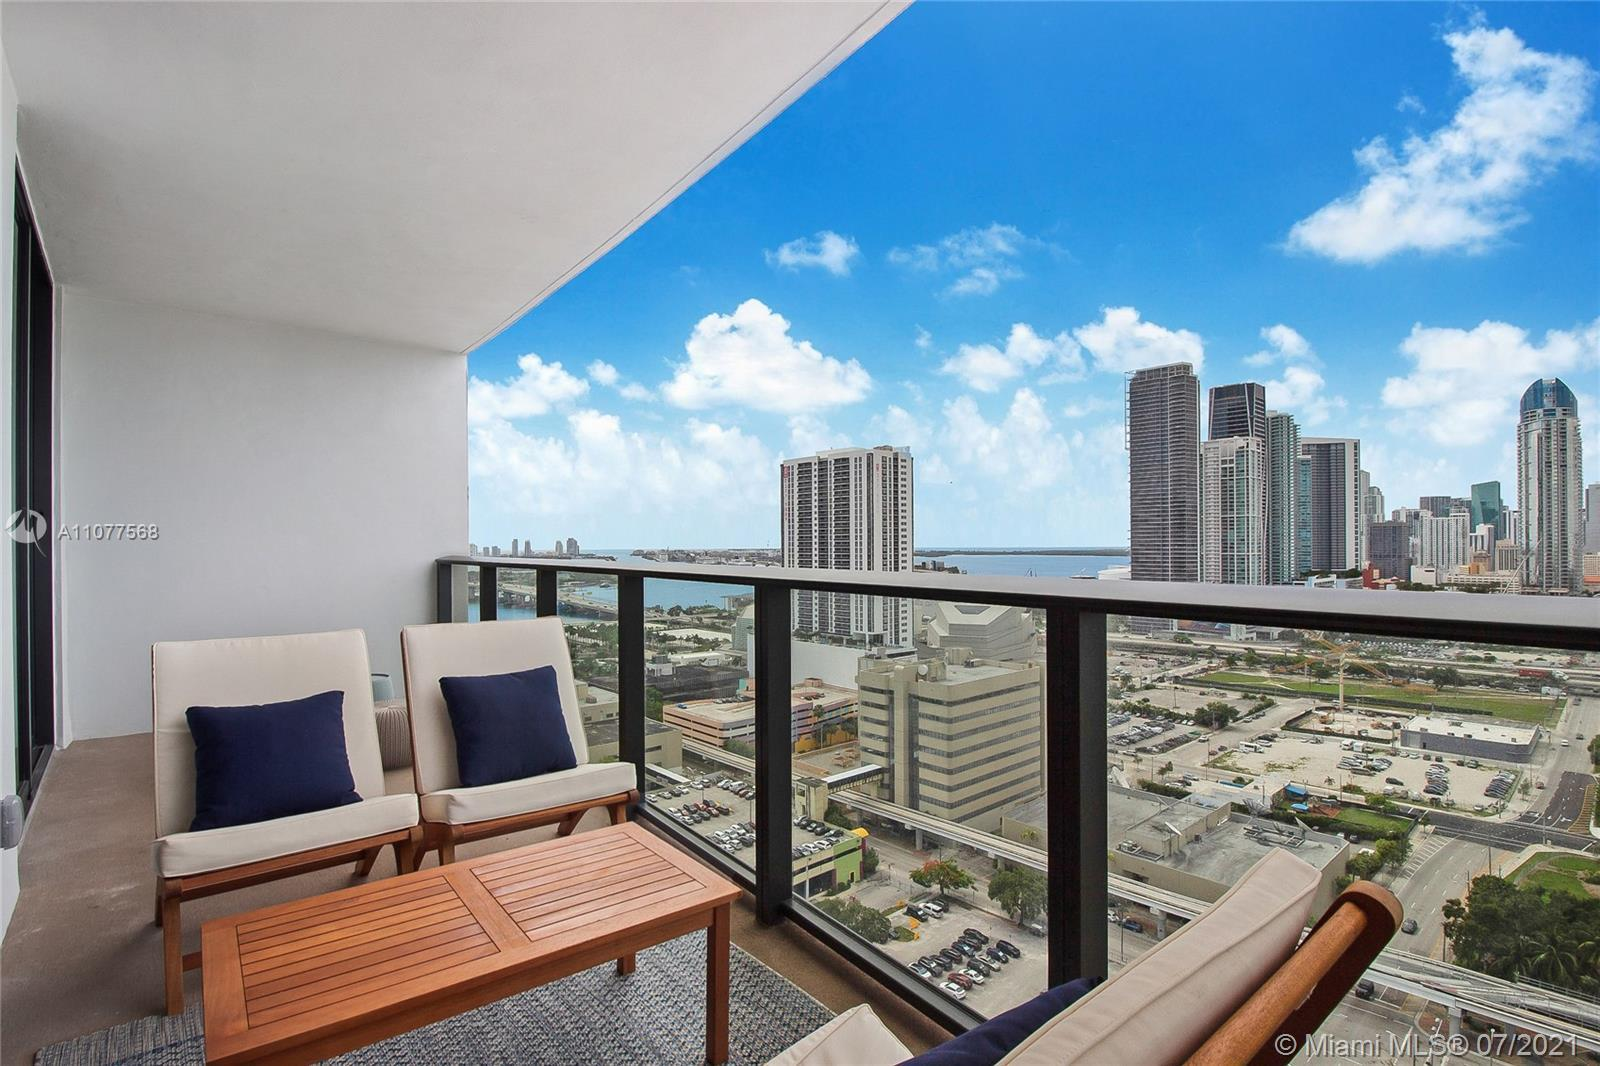 Turnkey unit located in the Arts & Entertainment District, this 2 bed/ 2 bath condo has endless pano